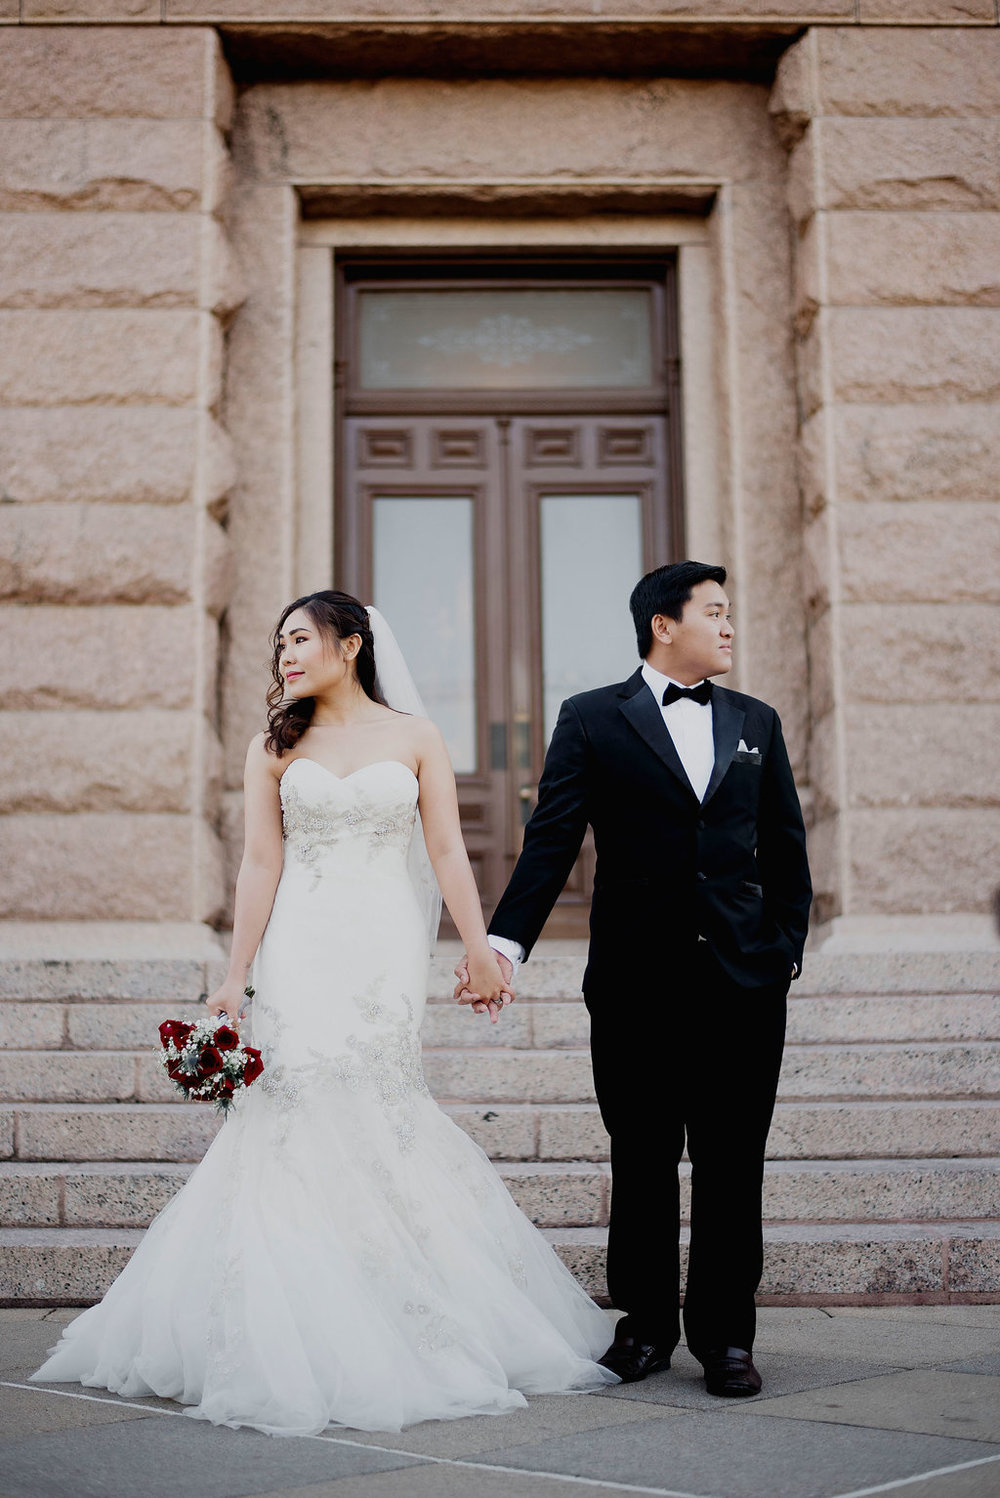 Austin Pre Wedding Portraits Photographer Texas State Capitol Zilker Botanical Gardens EffJay Photography018.jpg